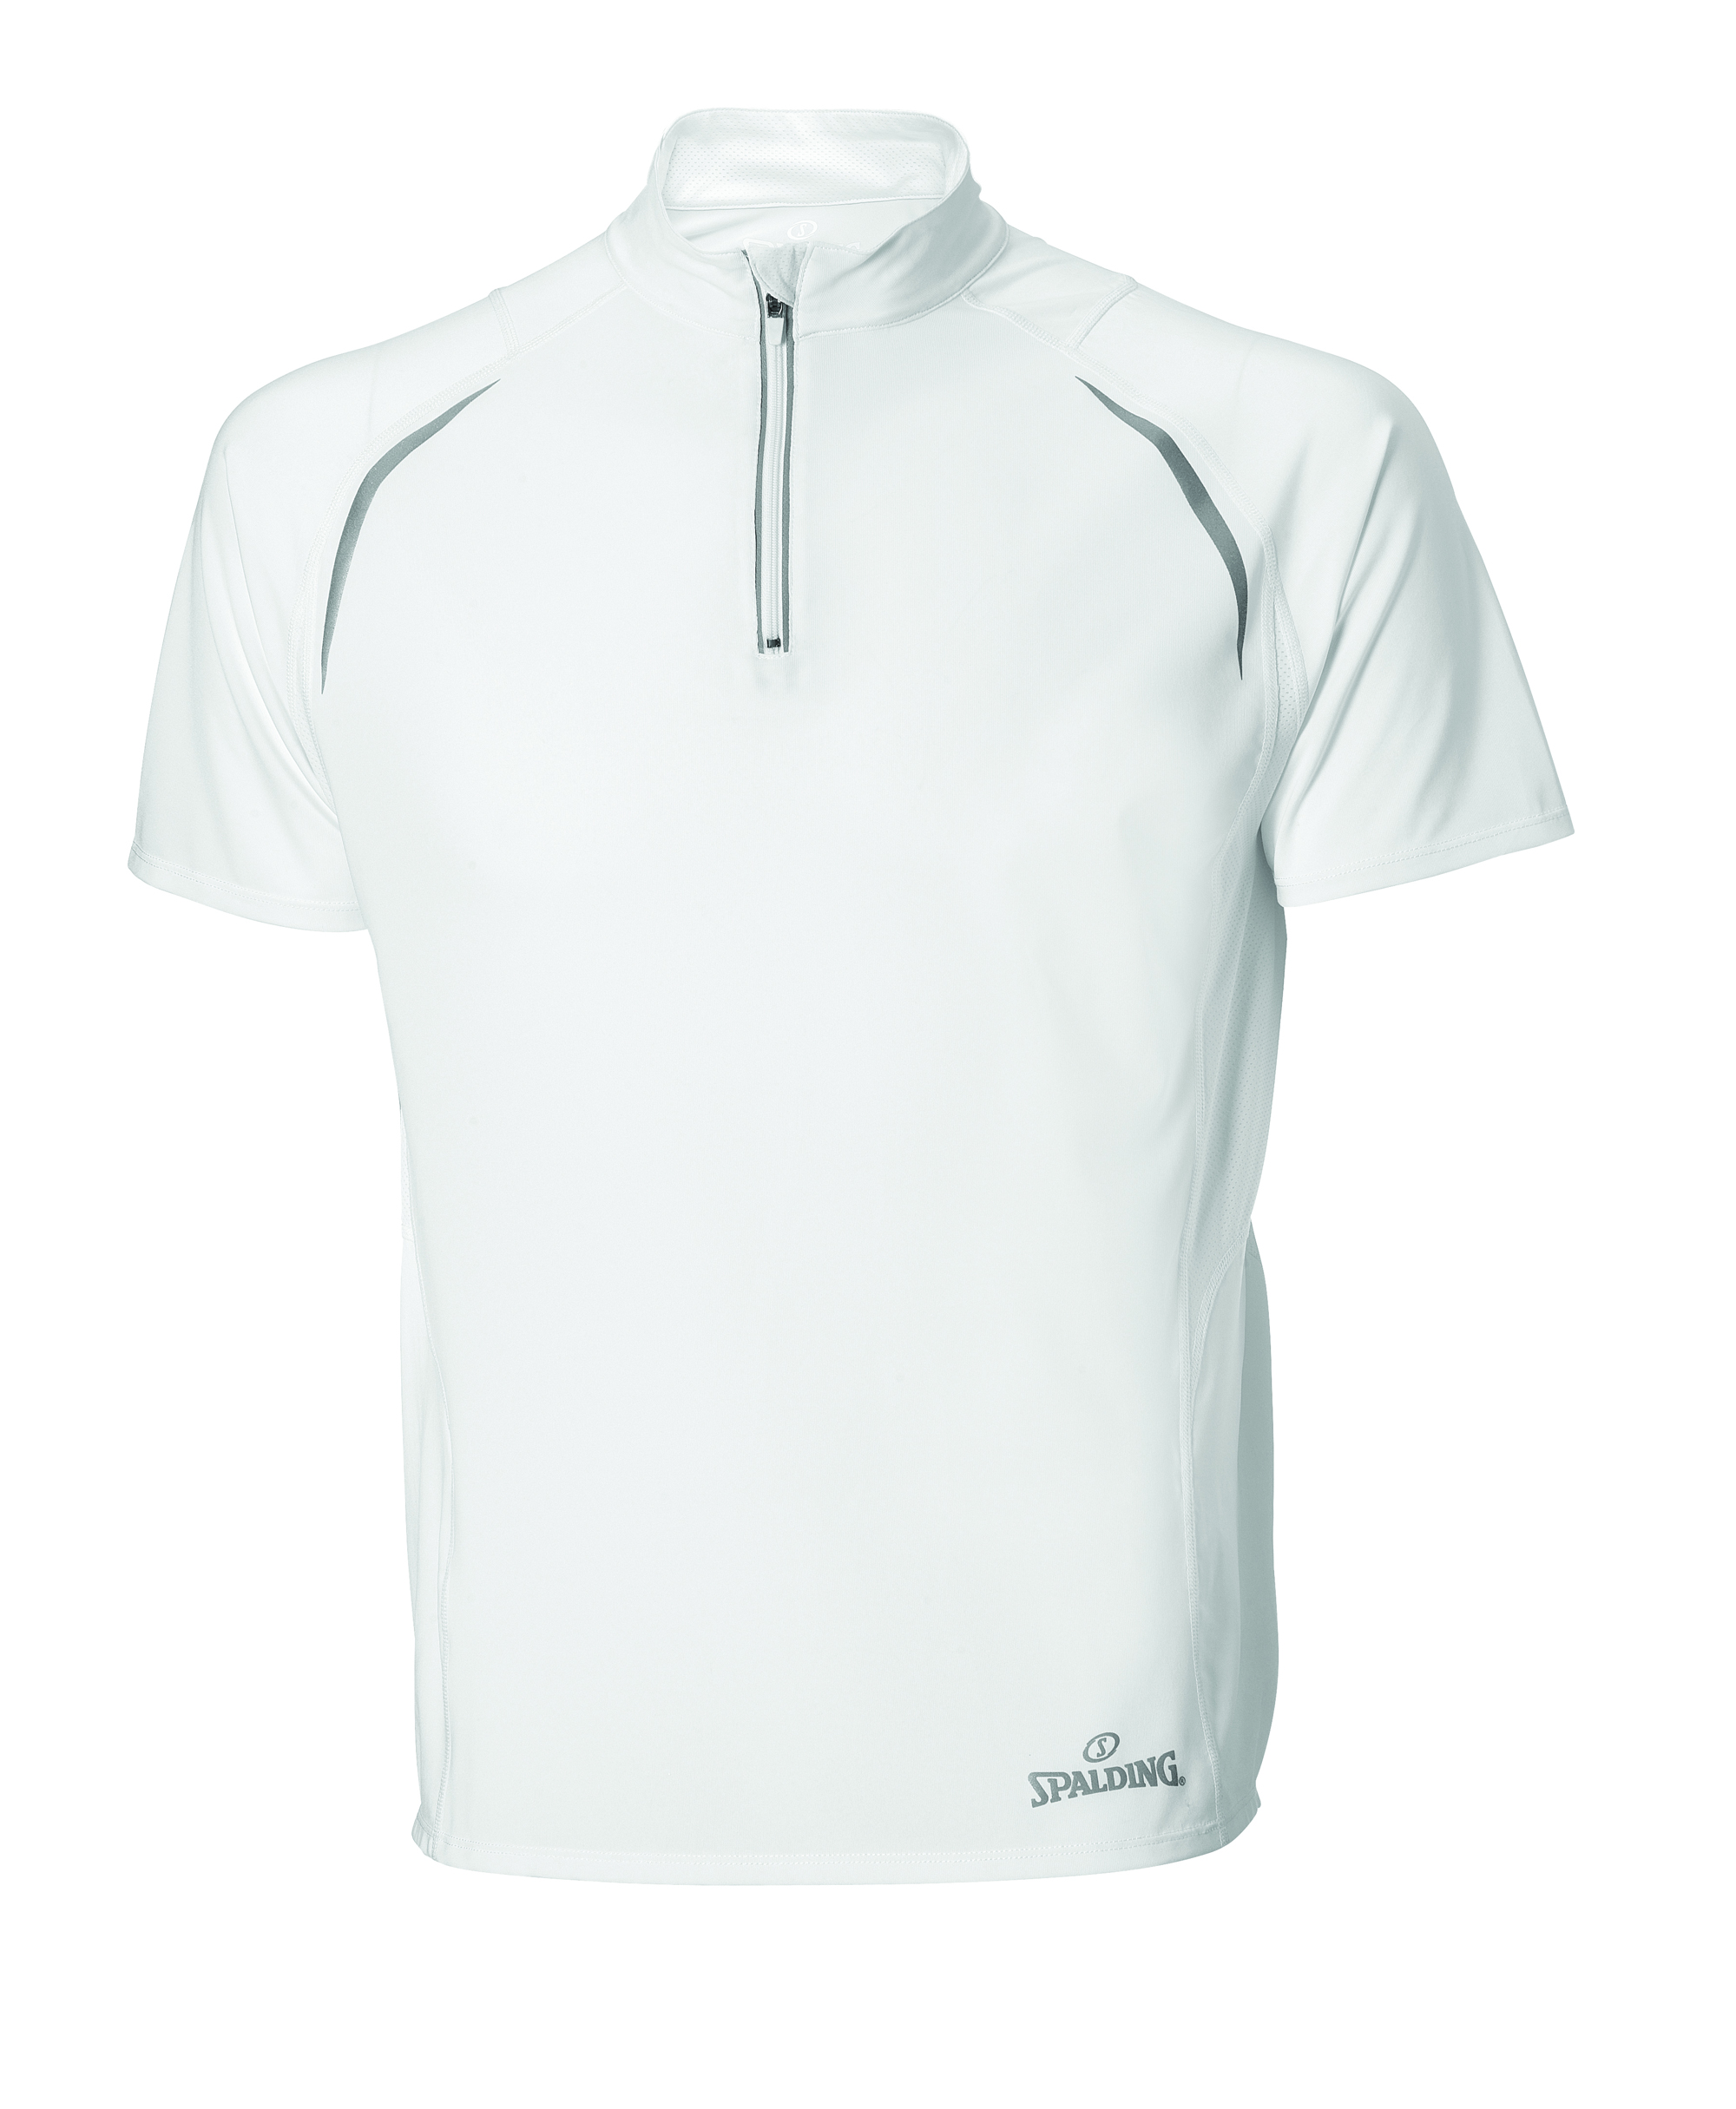 Endurance Zip Top - White - S